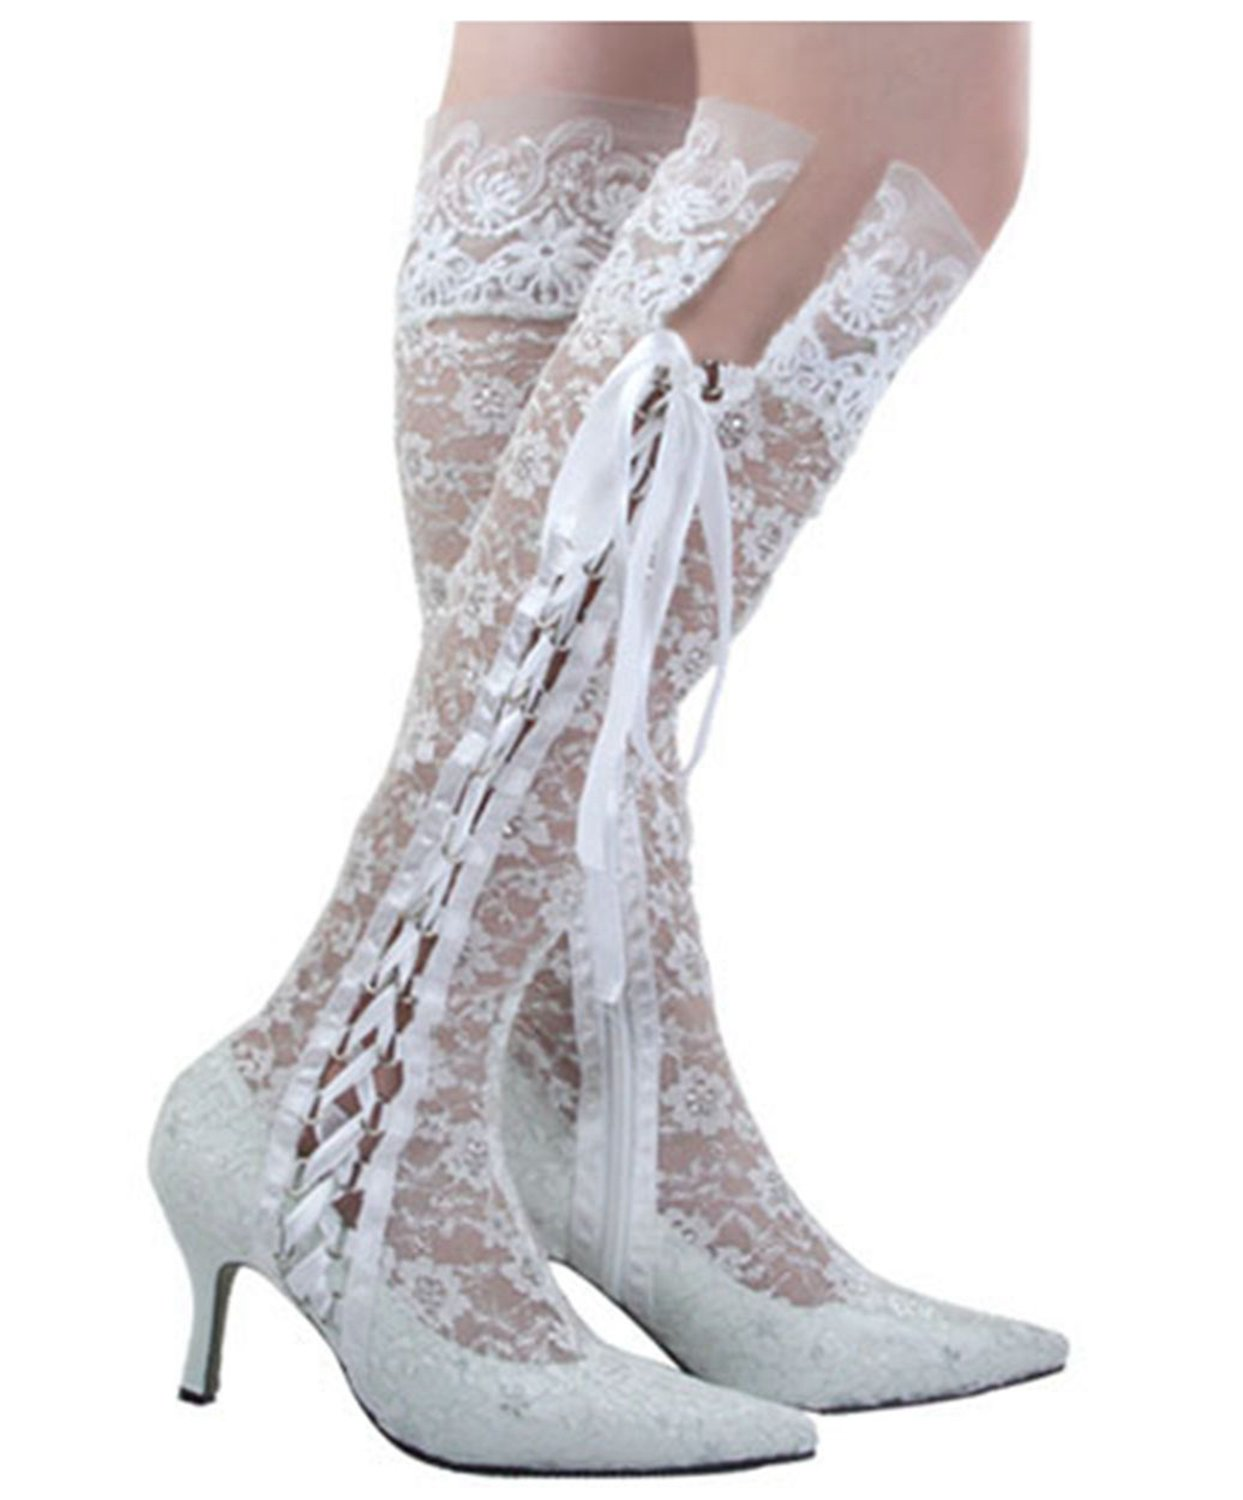 Minishion Womens Pointy Toe High Heel Bride Wedding Ivory Lace Shoes Knee-high Boots 6.5 M US